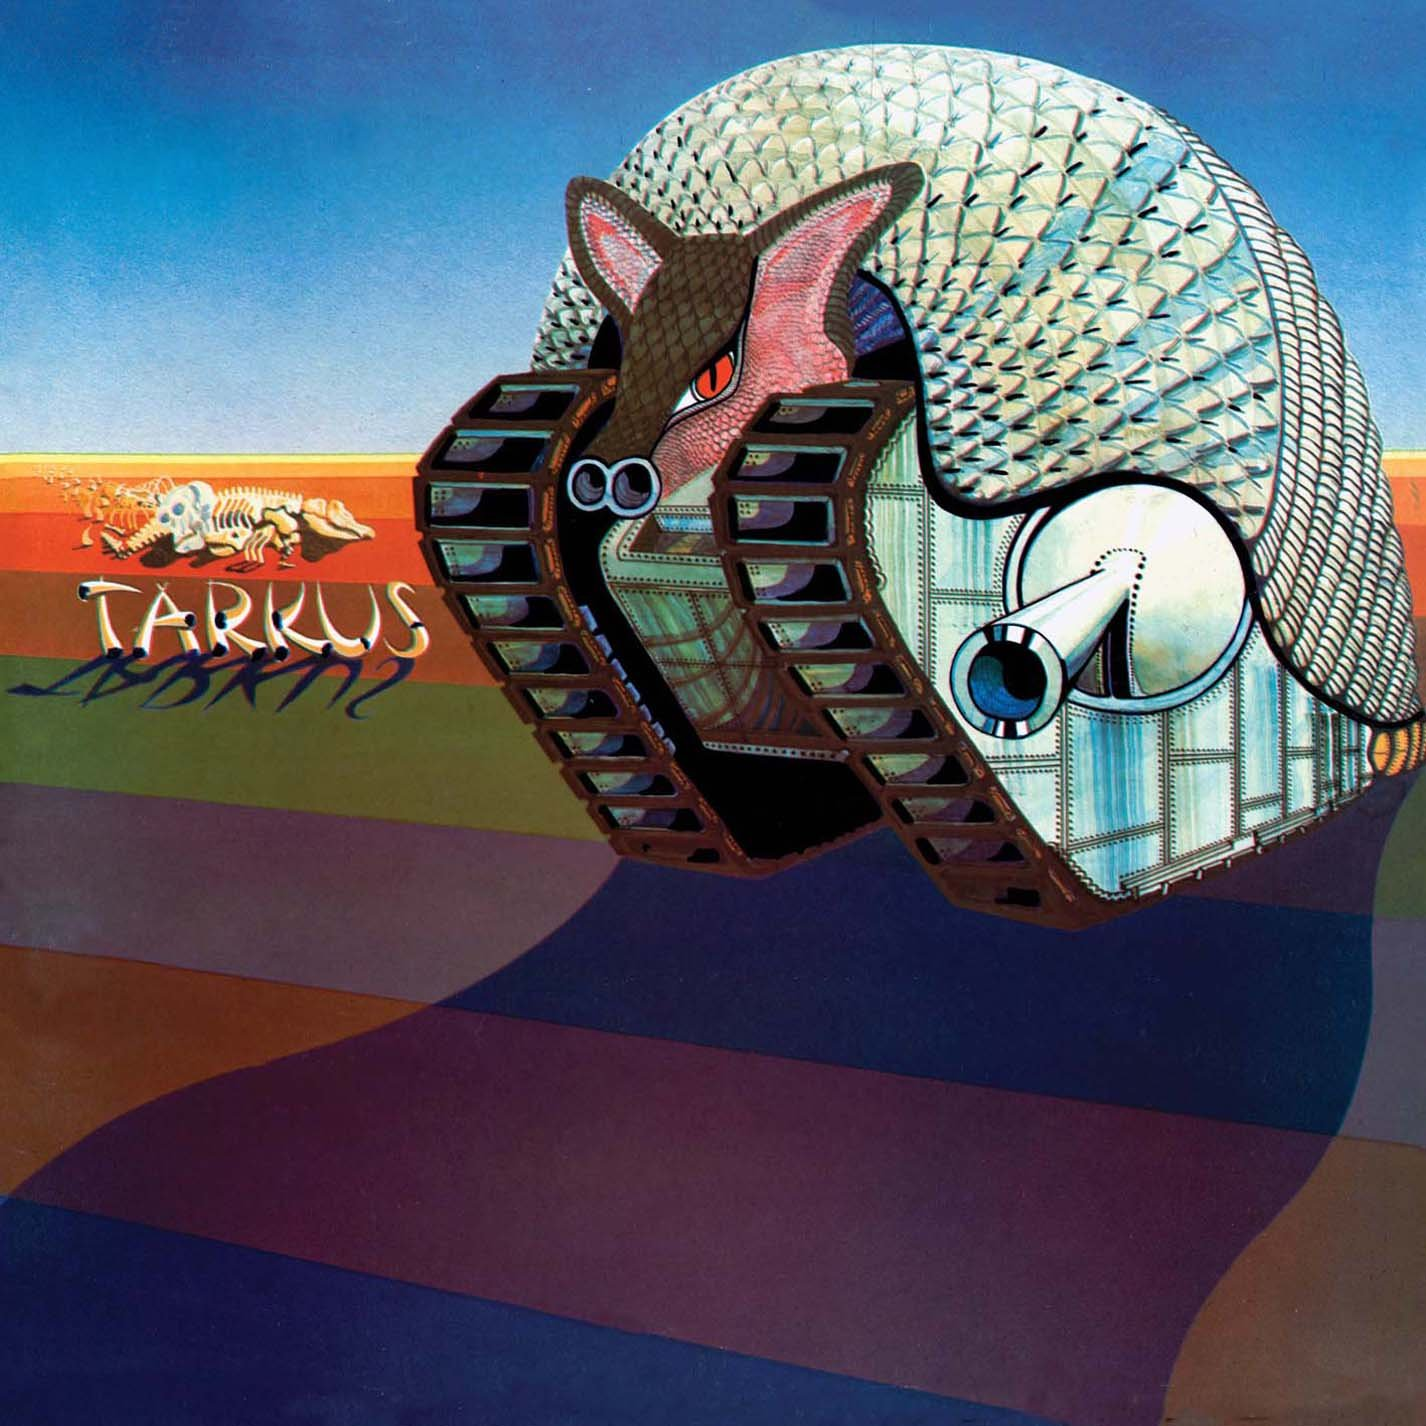 CD : Emerson, Lake & Palmer - Tarkus (CD)